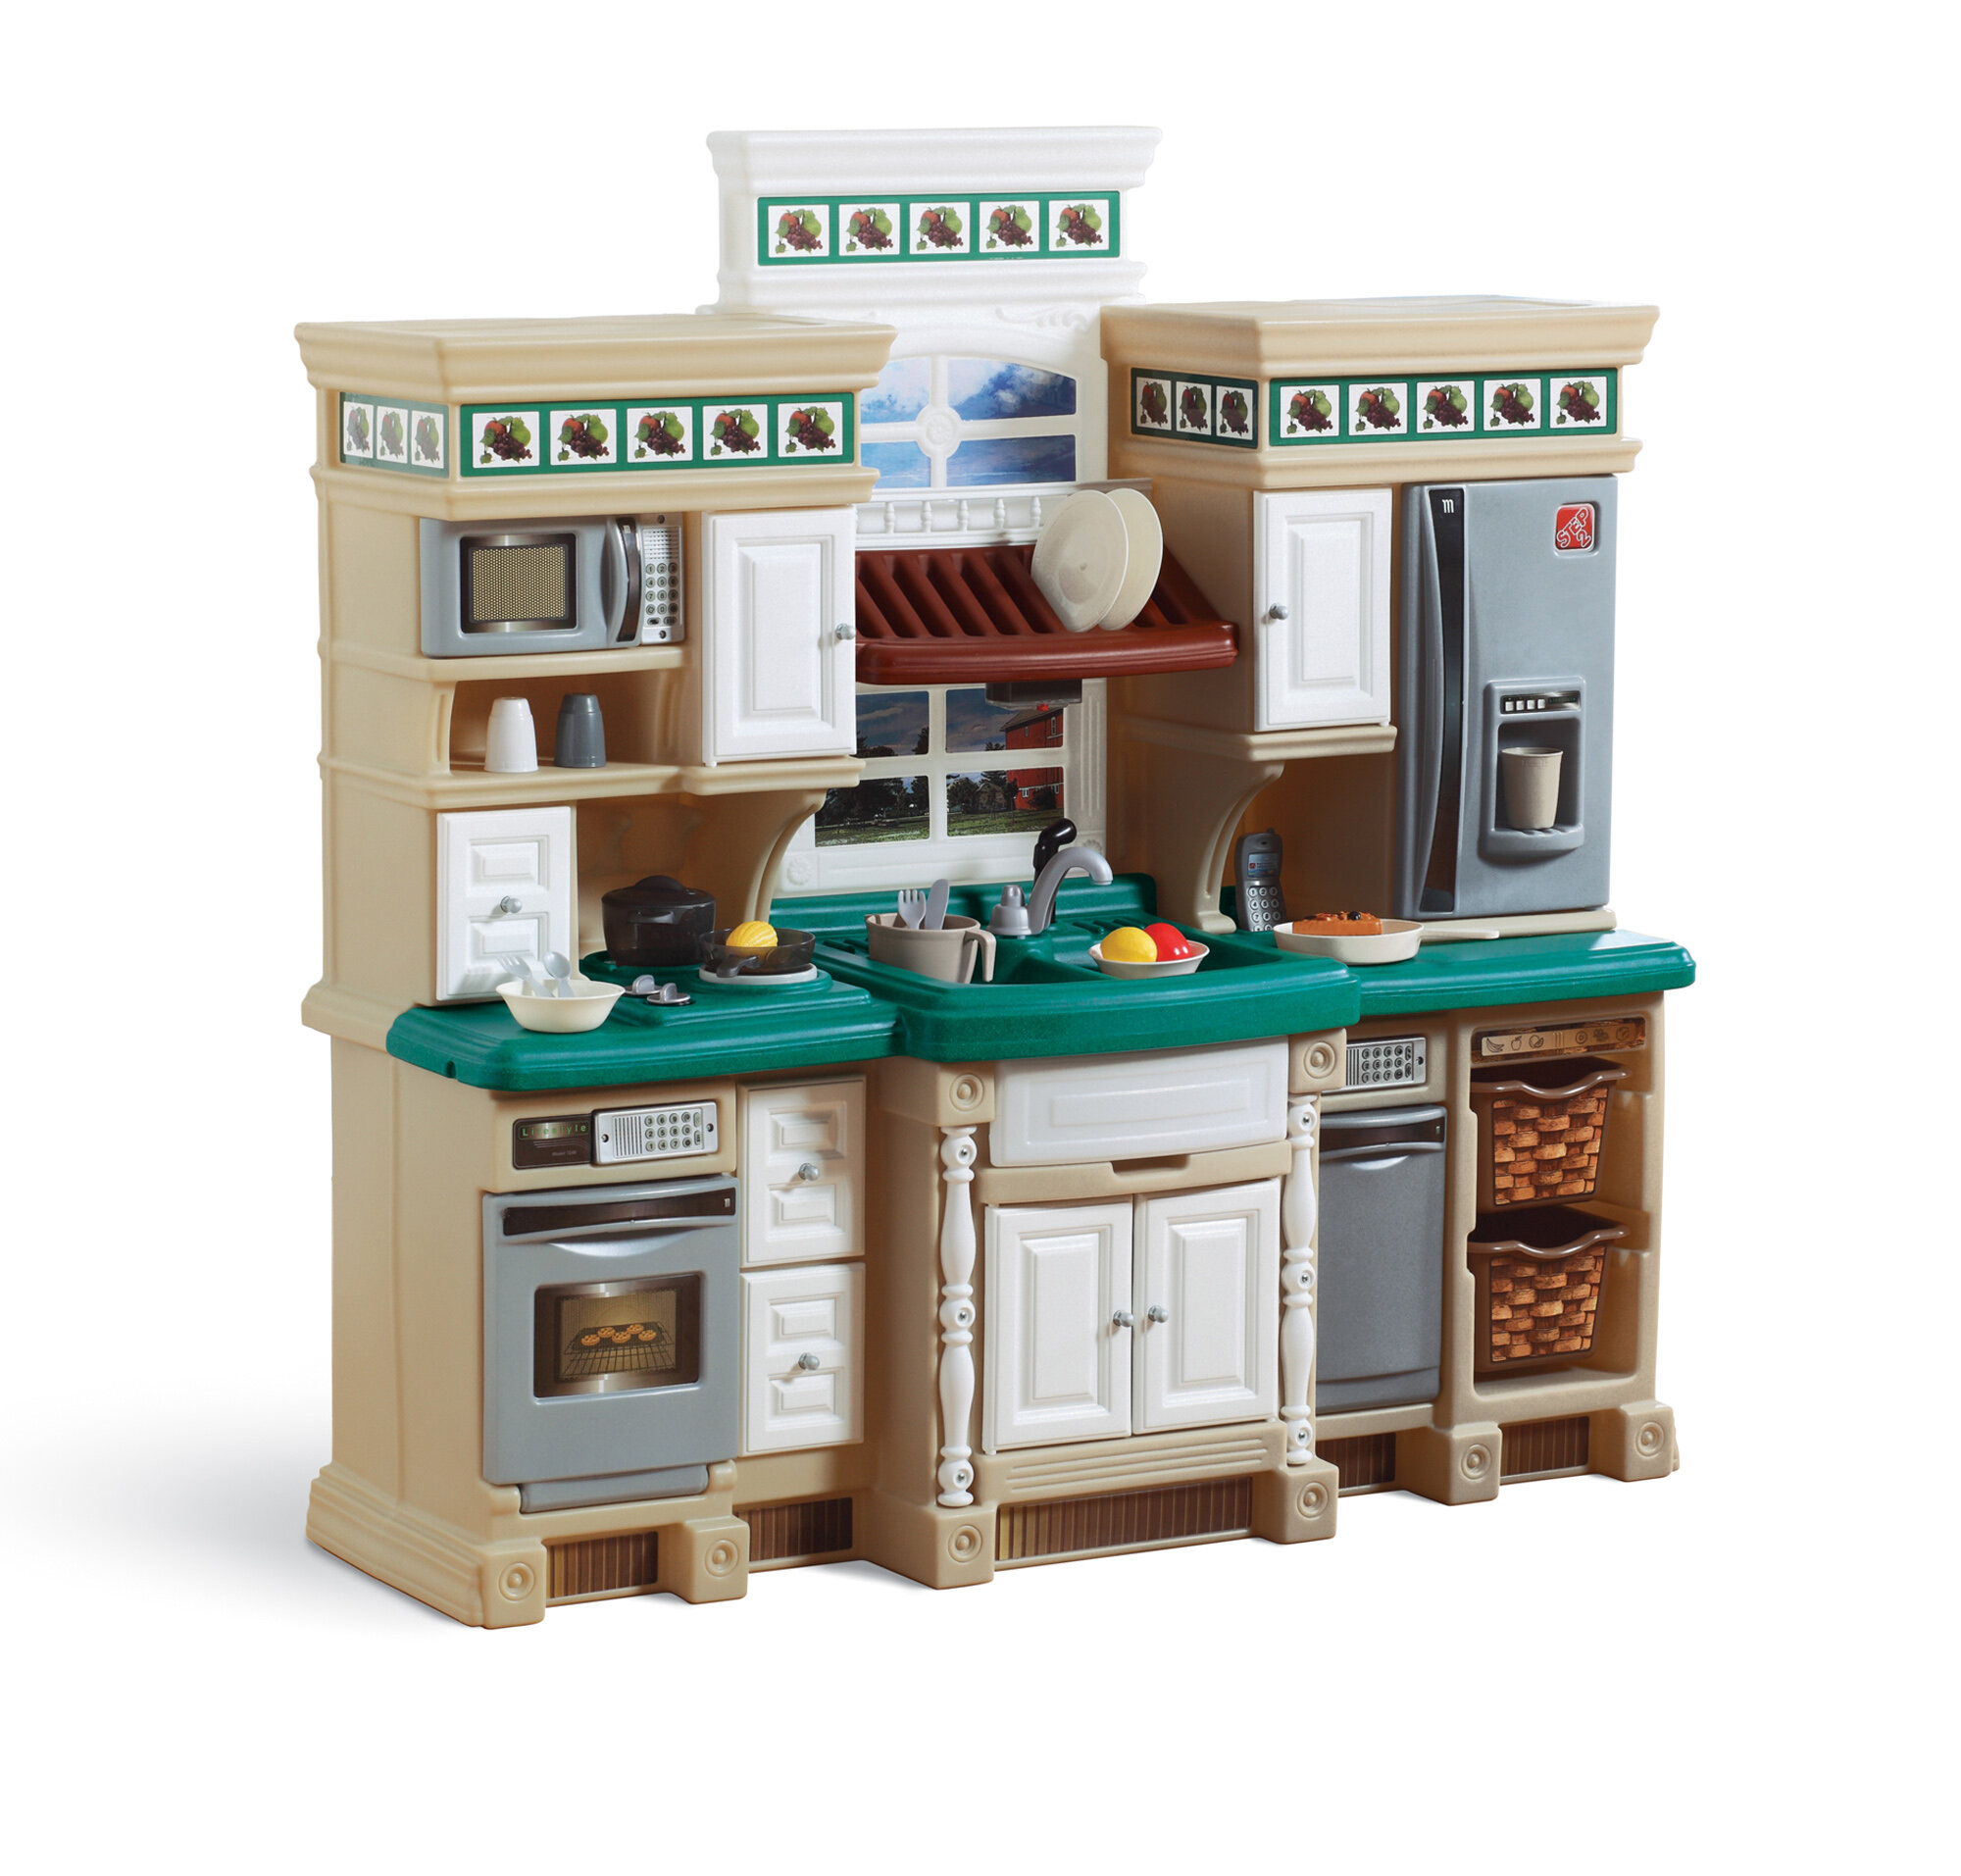 details about step2 lifestyle deluxe kitchen set